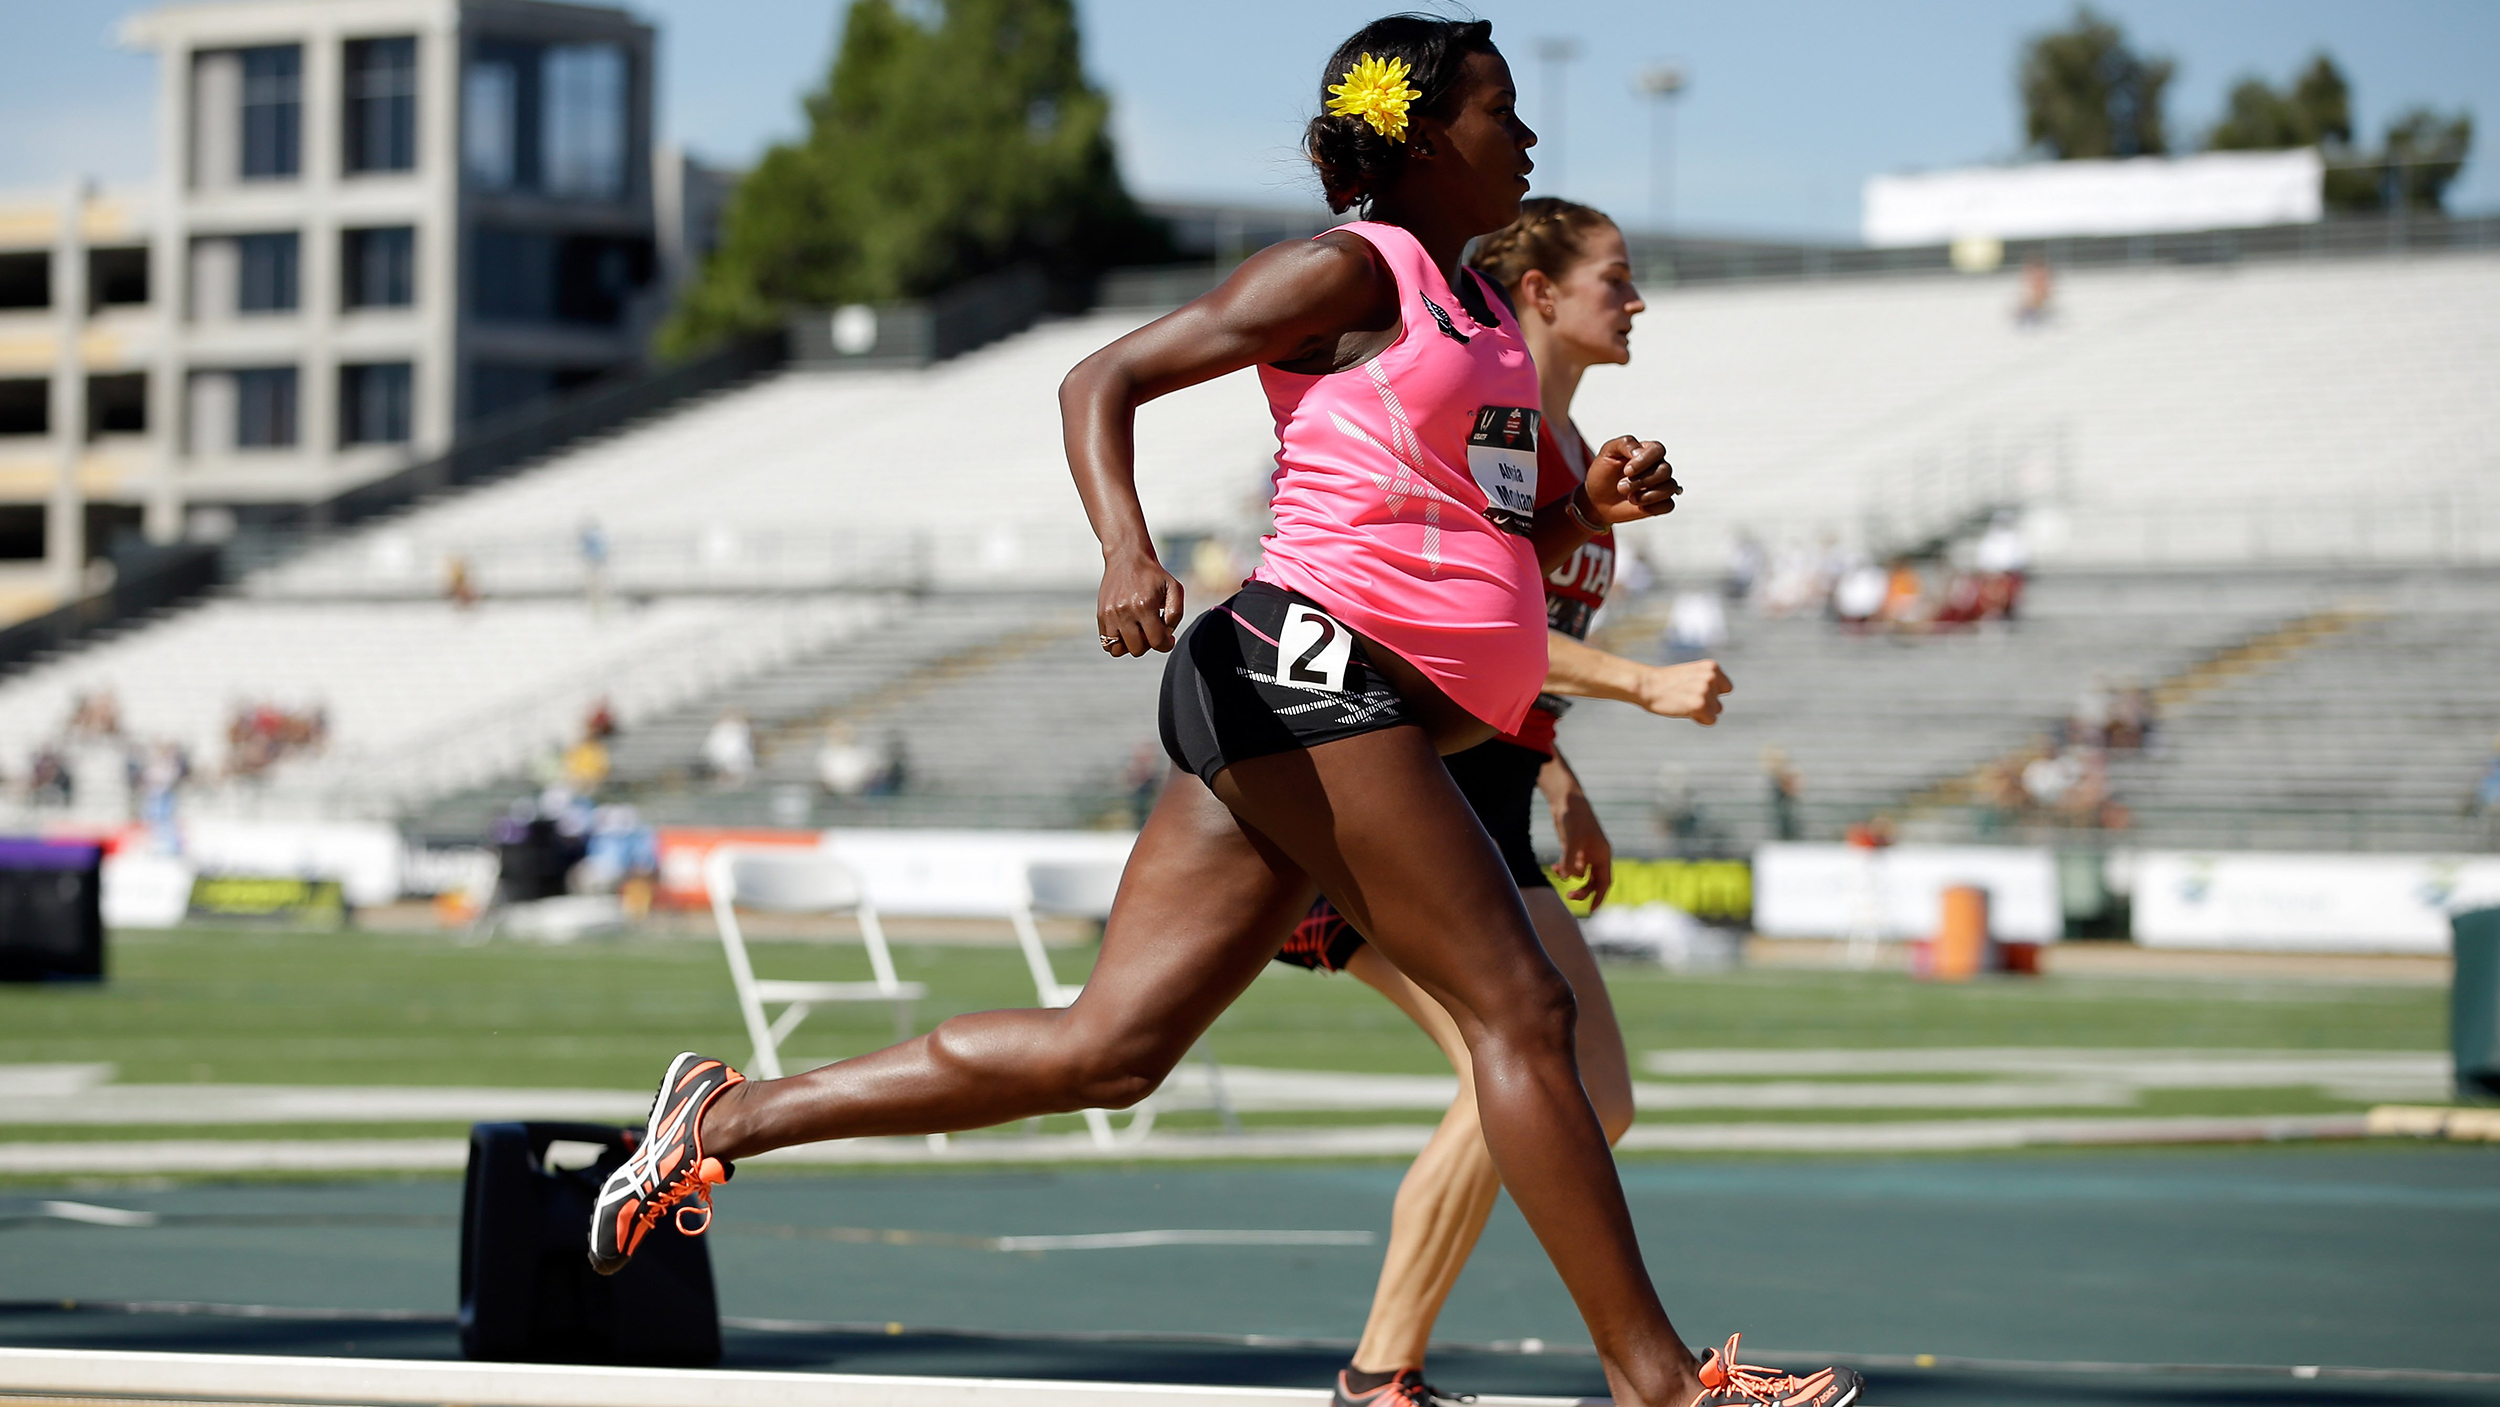 Olympian Alysia Montano runs race 8 months pregnant, gets standing ovation